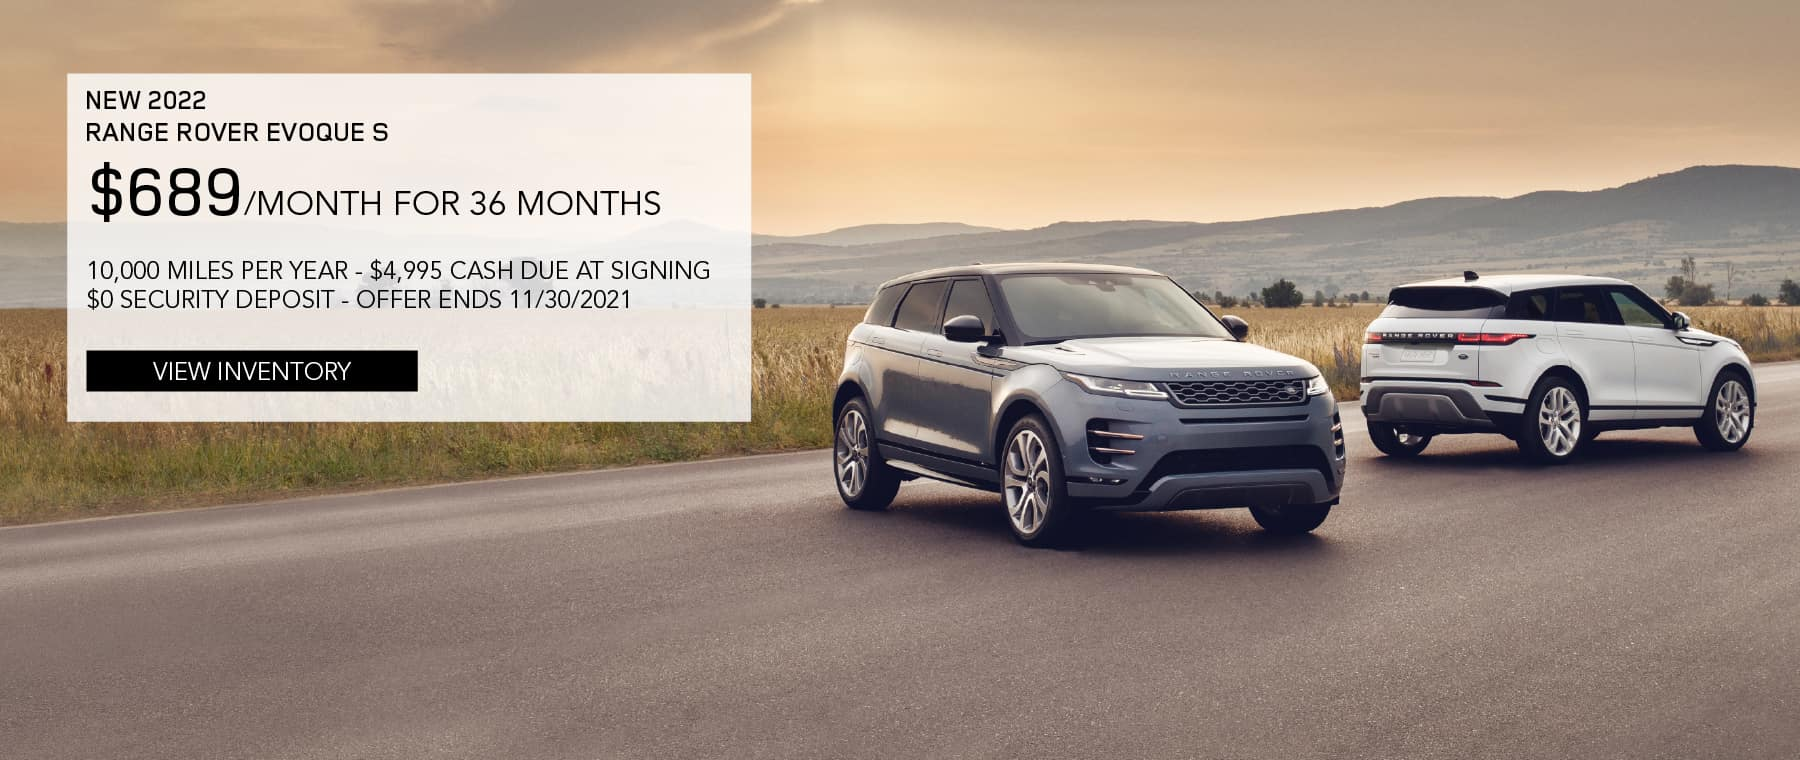 2020 Land Rover Discovery HSE. $647 per month for 33 months. $3,500 CCR plus first payment plus tax plus fees plus bank fees. $0 security deposit. 7,500 miles per year. Stock number SL20231. View Special. Silver Discovery parked in driveway.